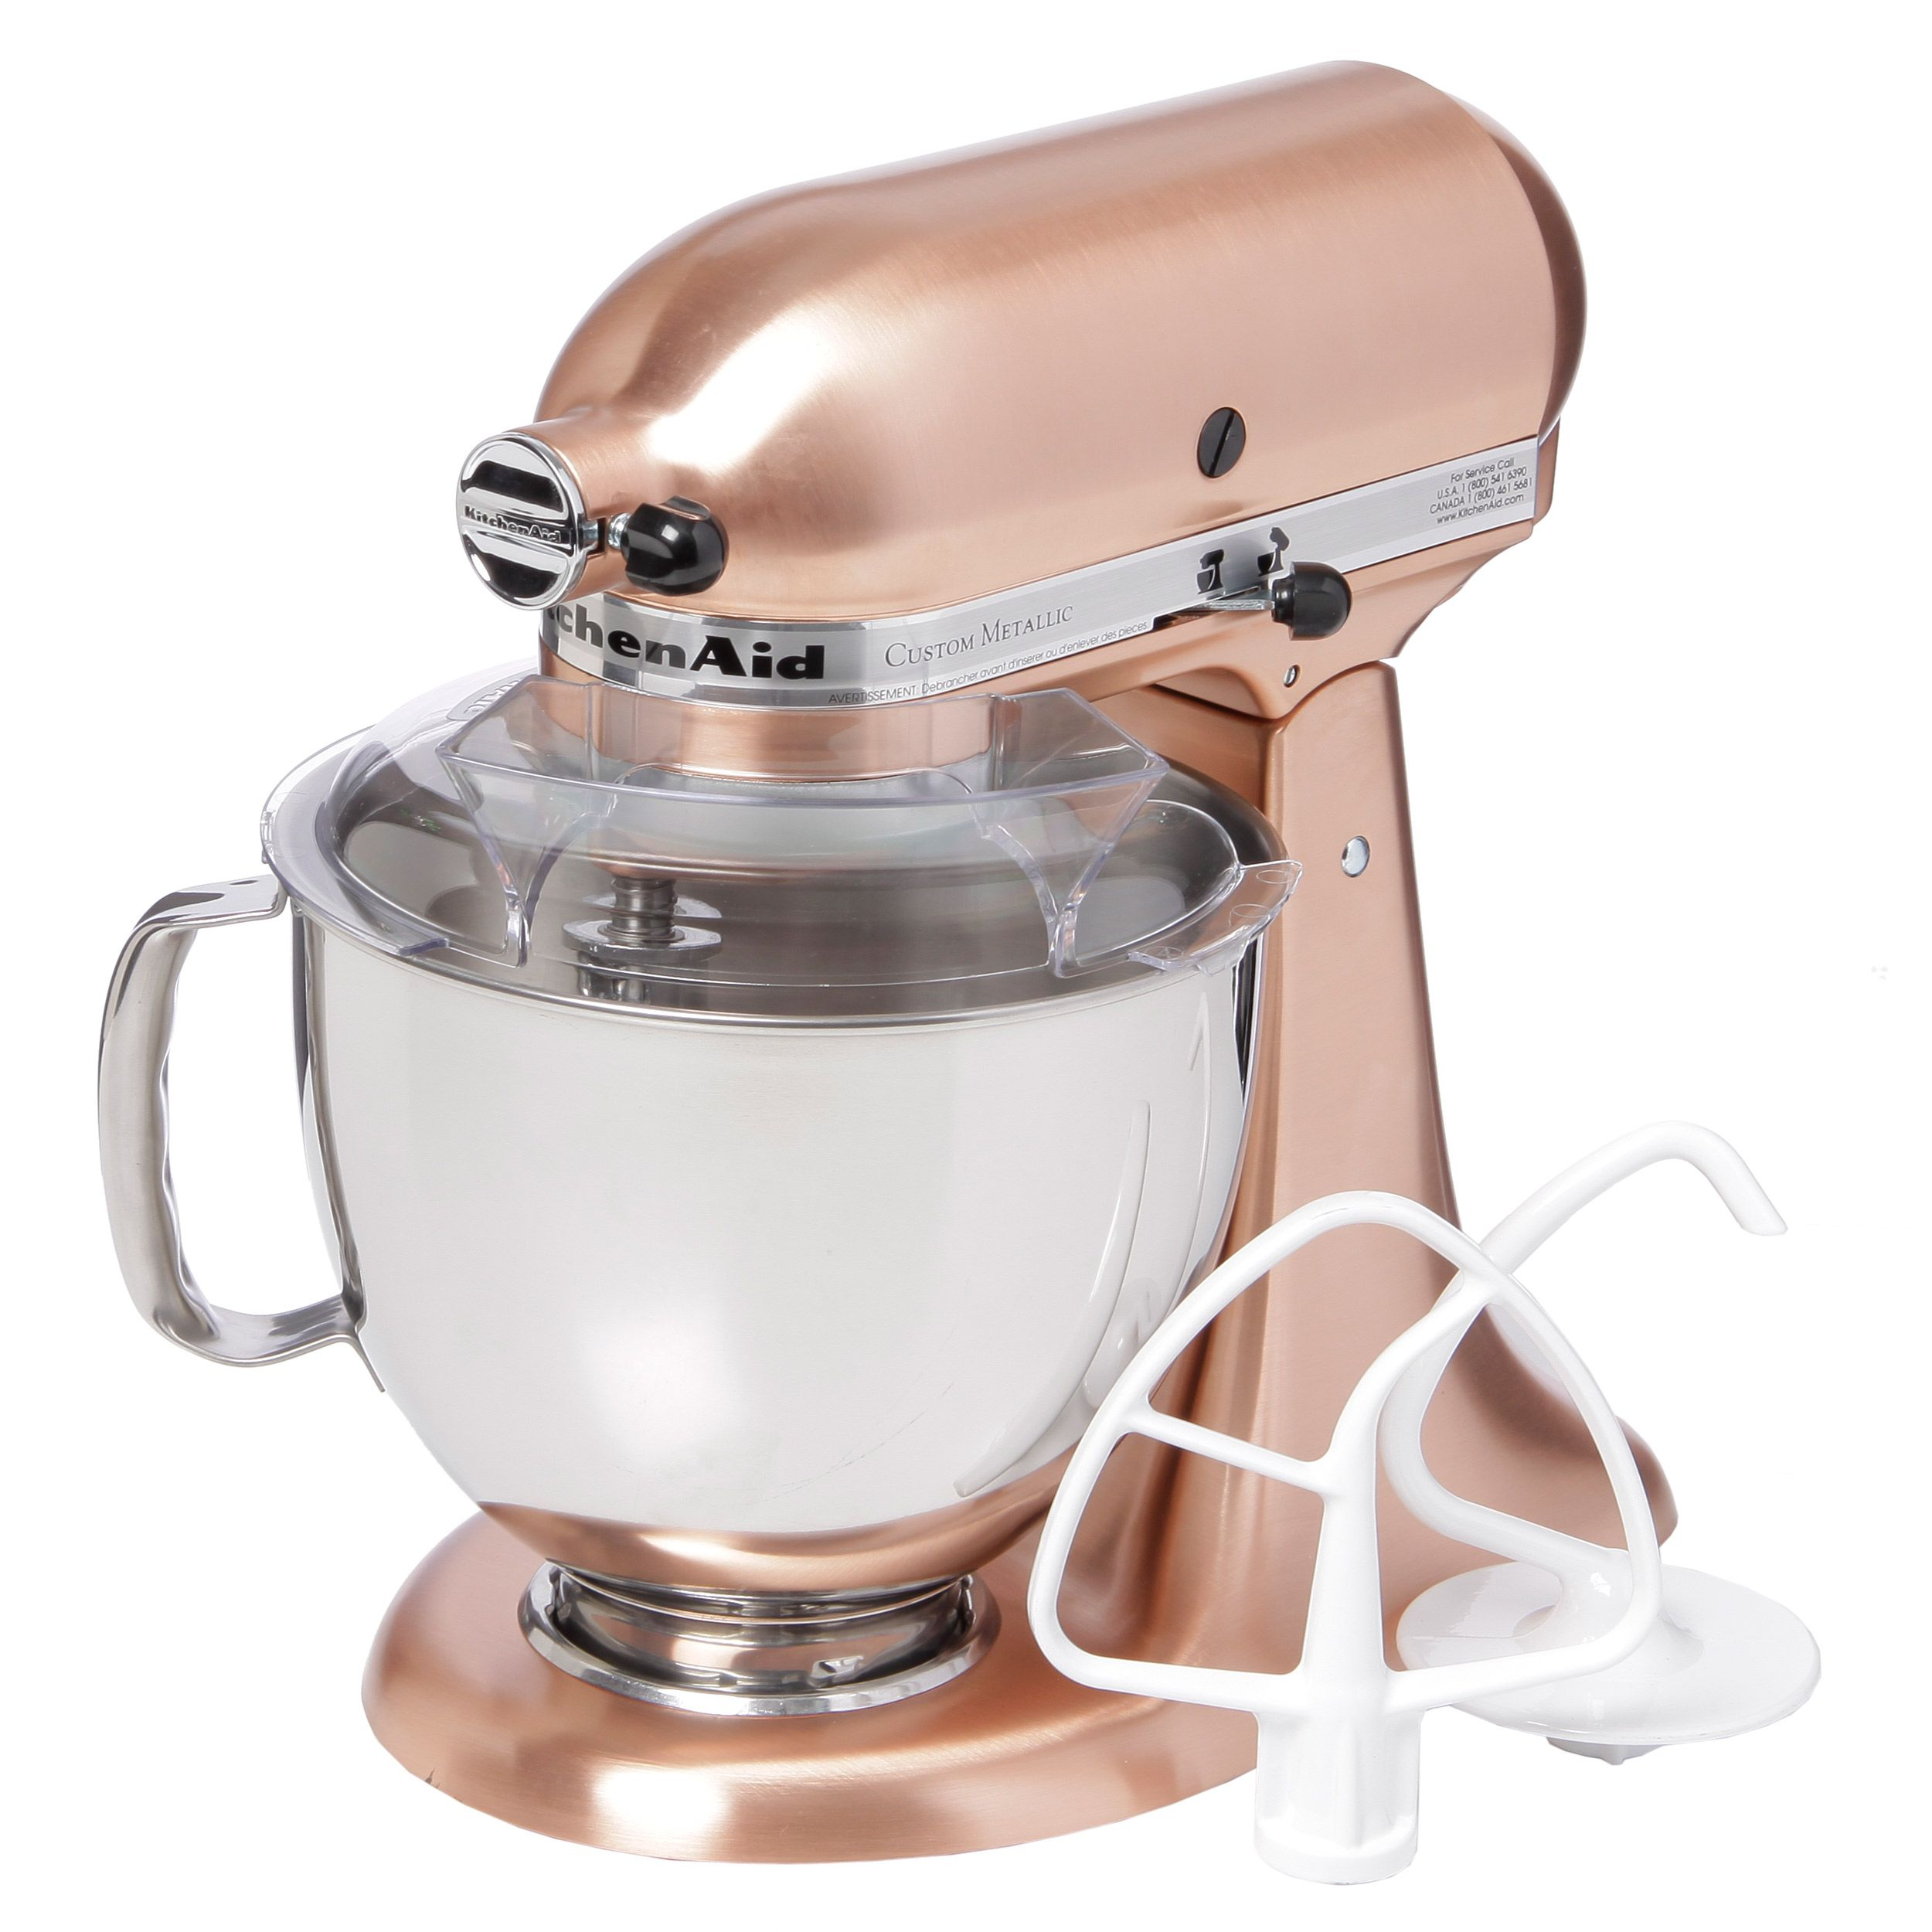 cook and bake like a professional with this metallic series stand